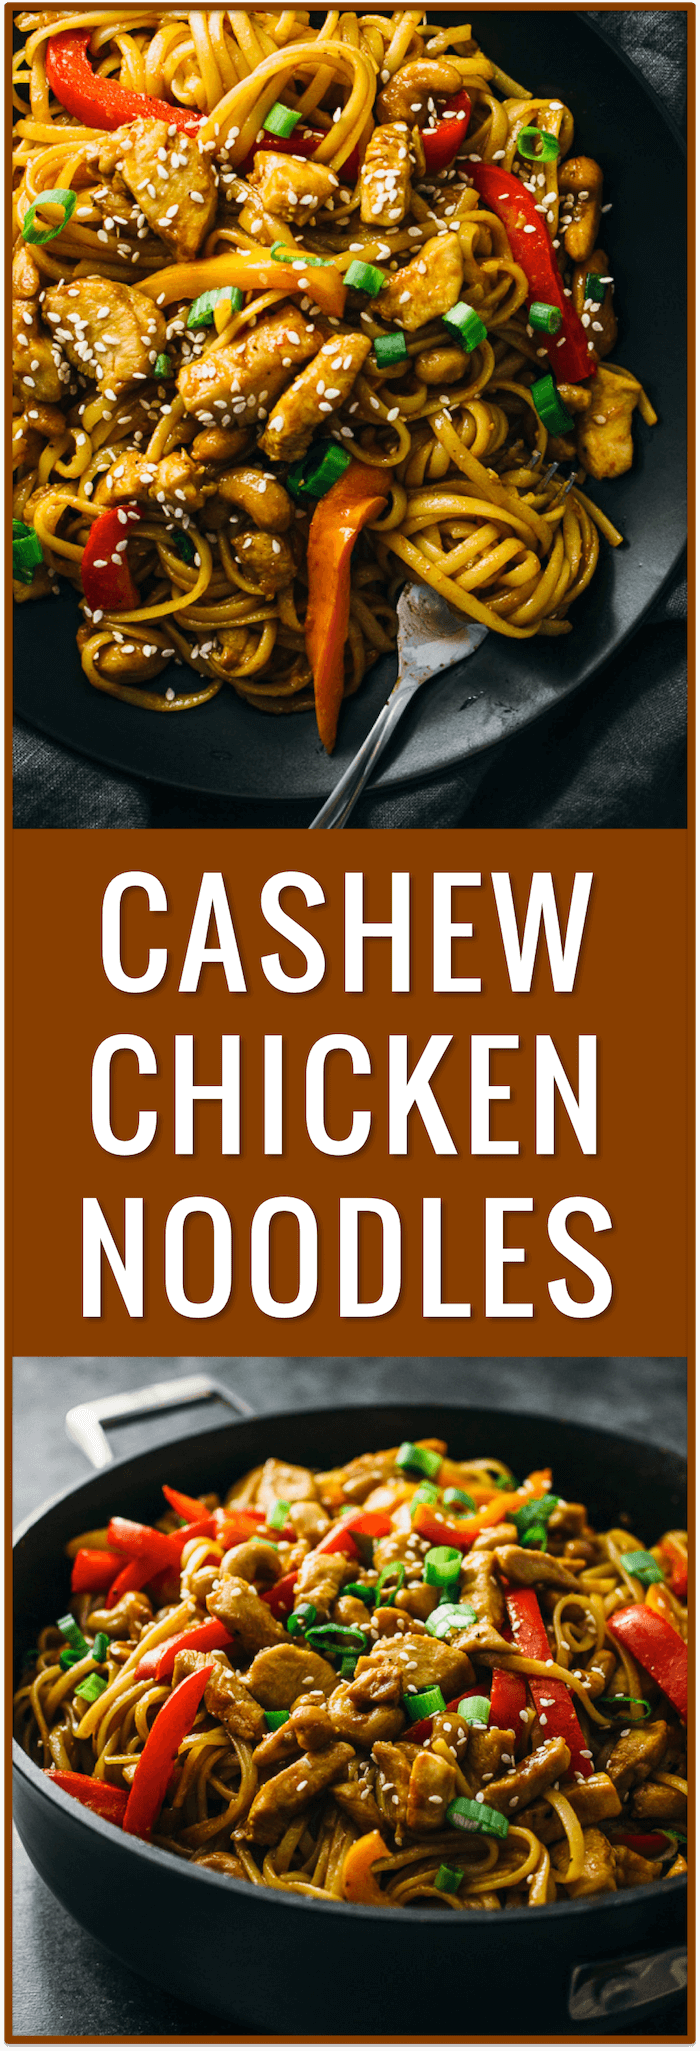 cashew chicken noodles, spicy, sauce, thai, recipe, easy, cashew crusted, healthy, asian, dinner, simple, fast, stir fry